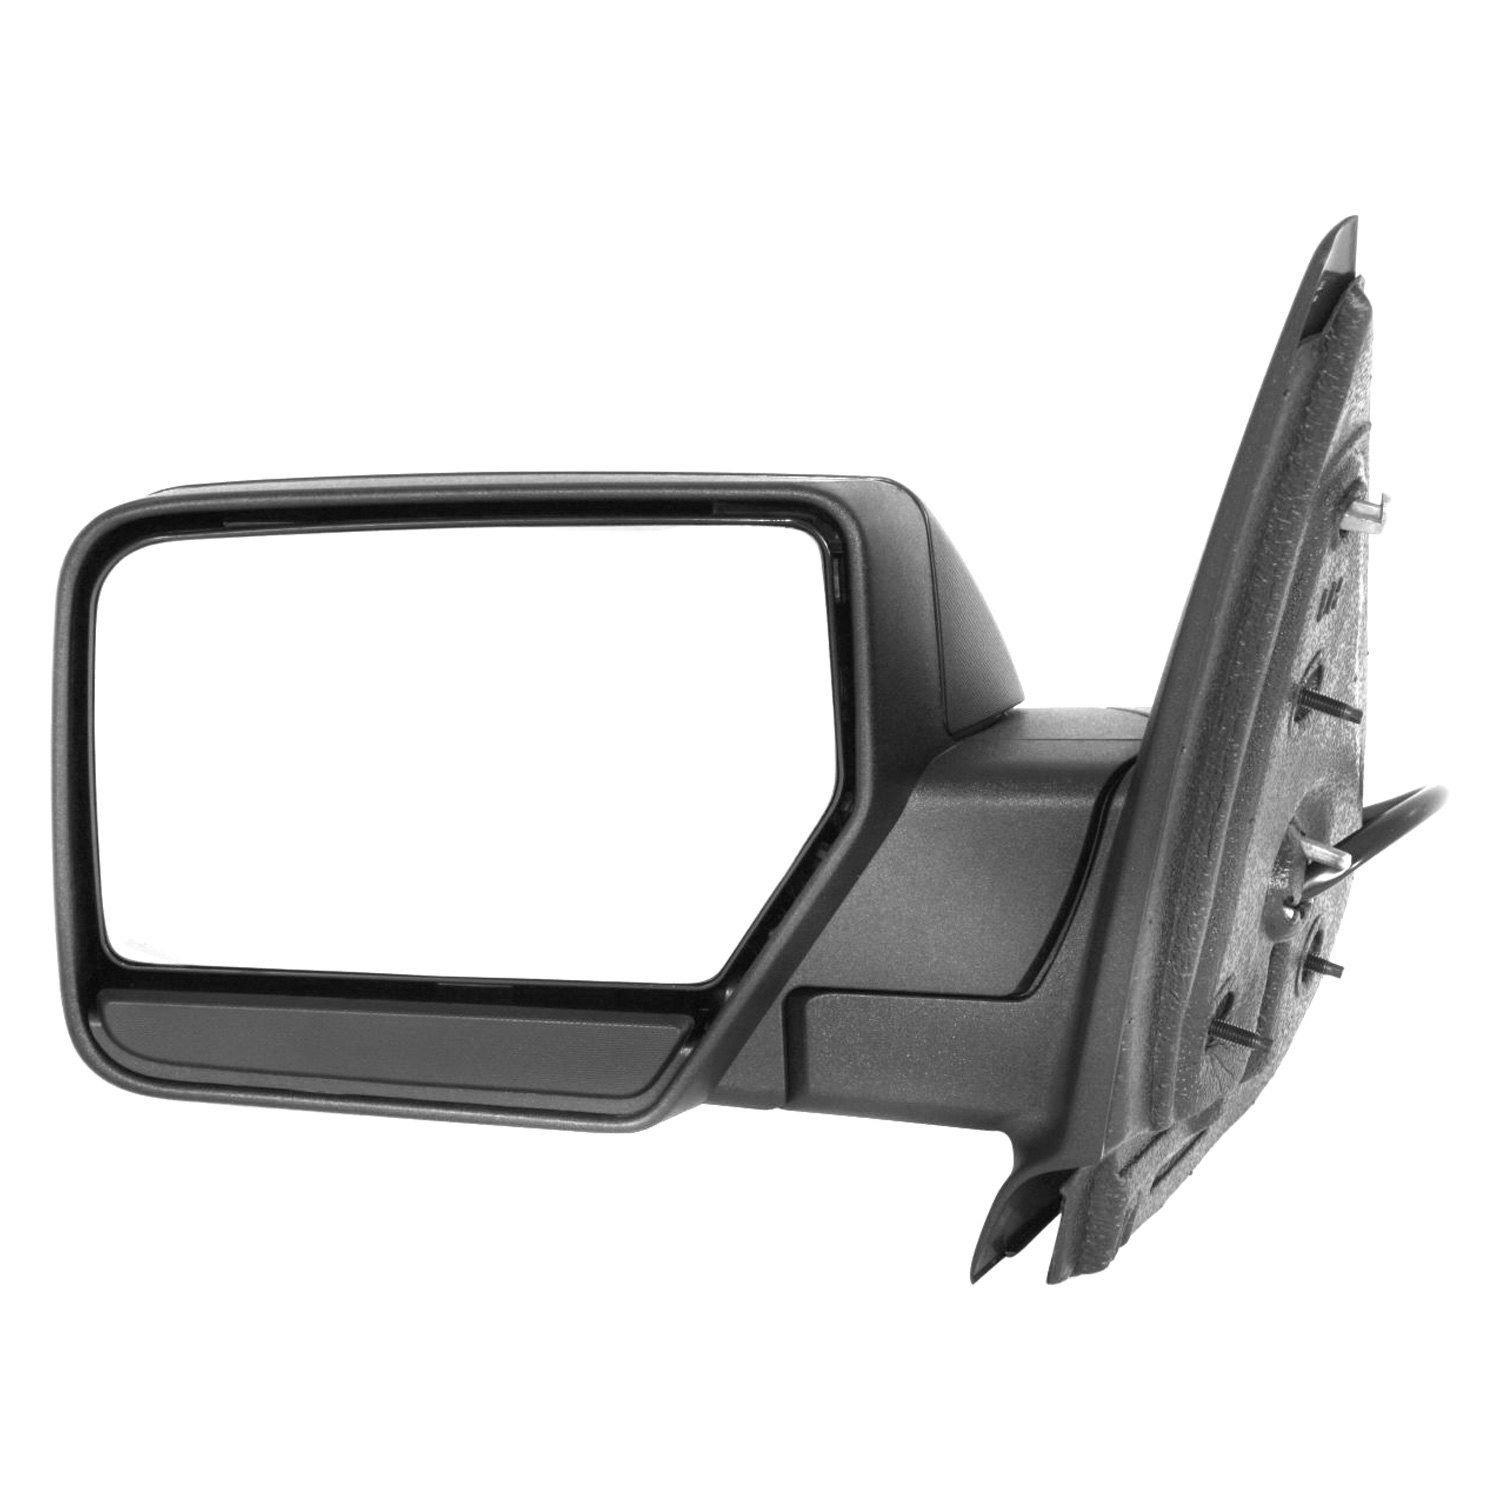 replace ford expedition 2007 power side view mirror. Black Bedroom Furniture Sets. Home Design Ideas